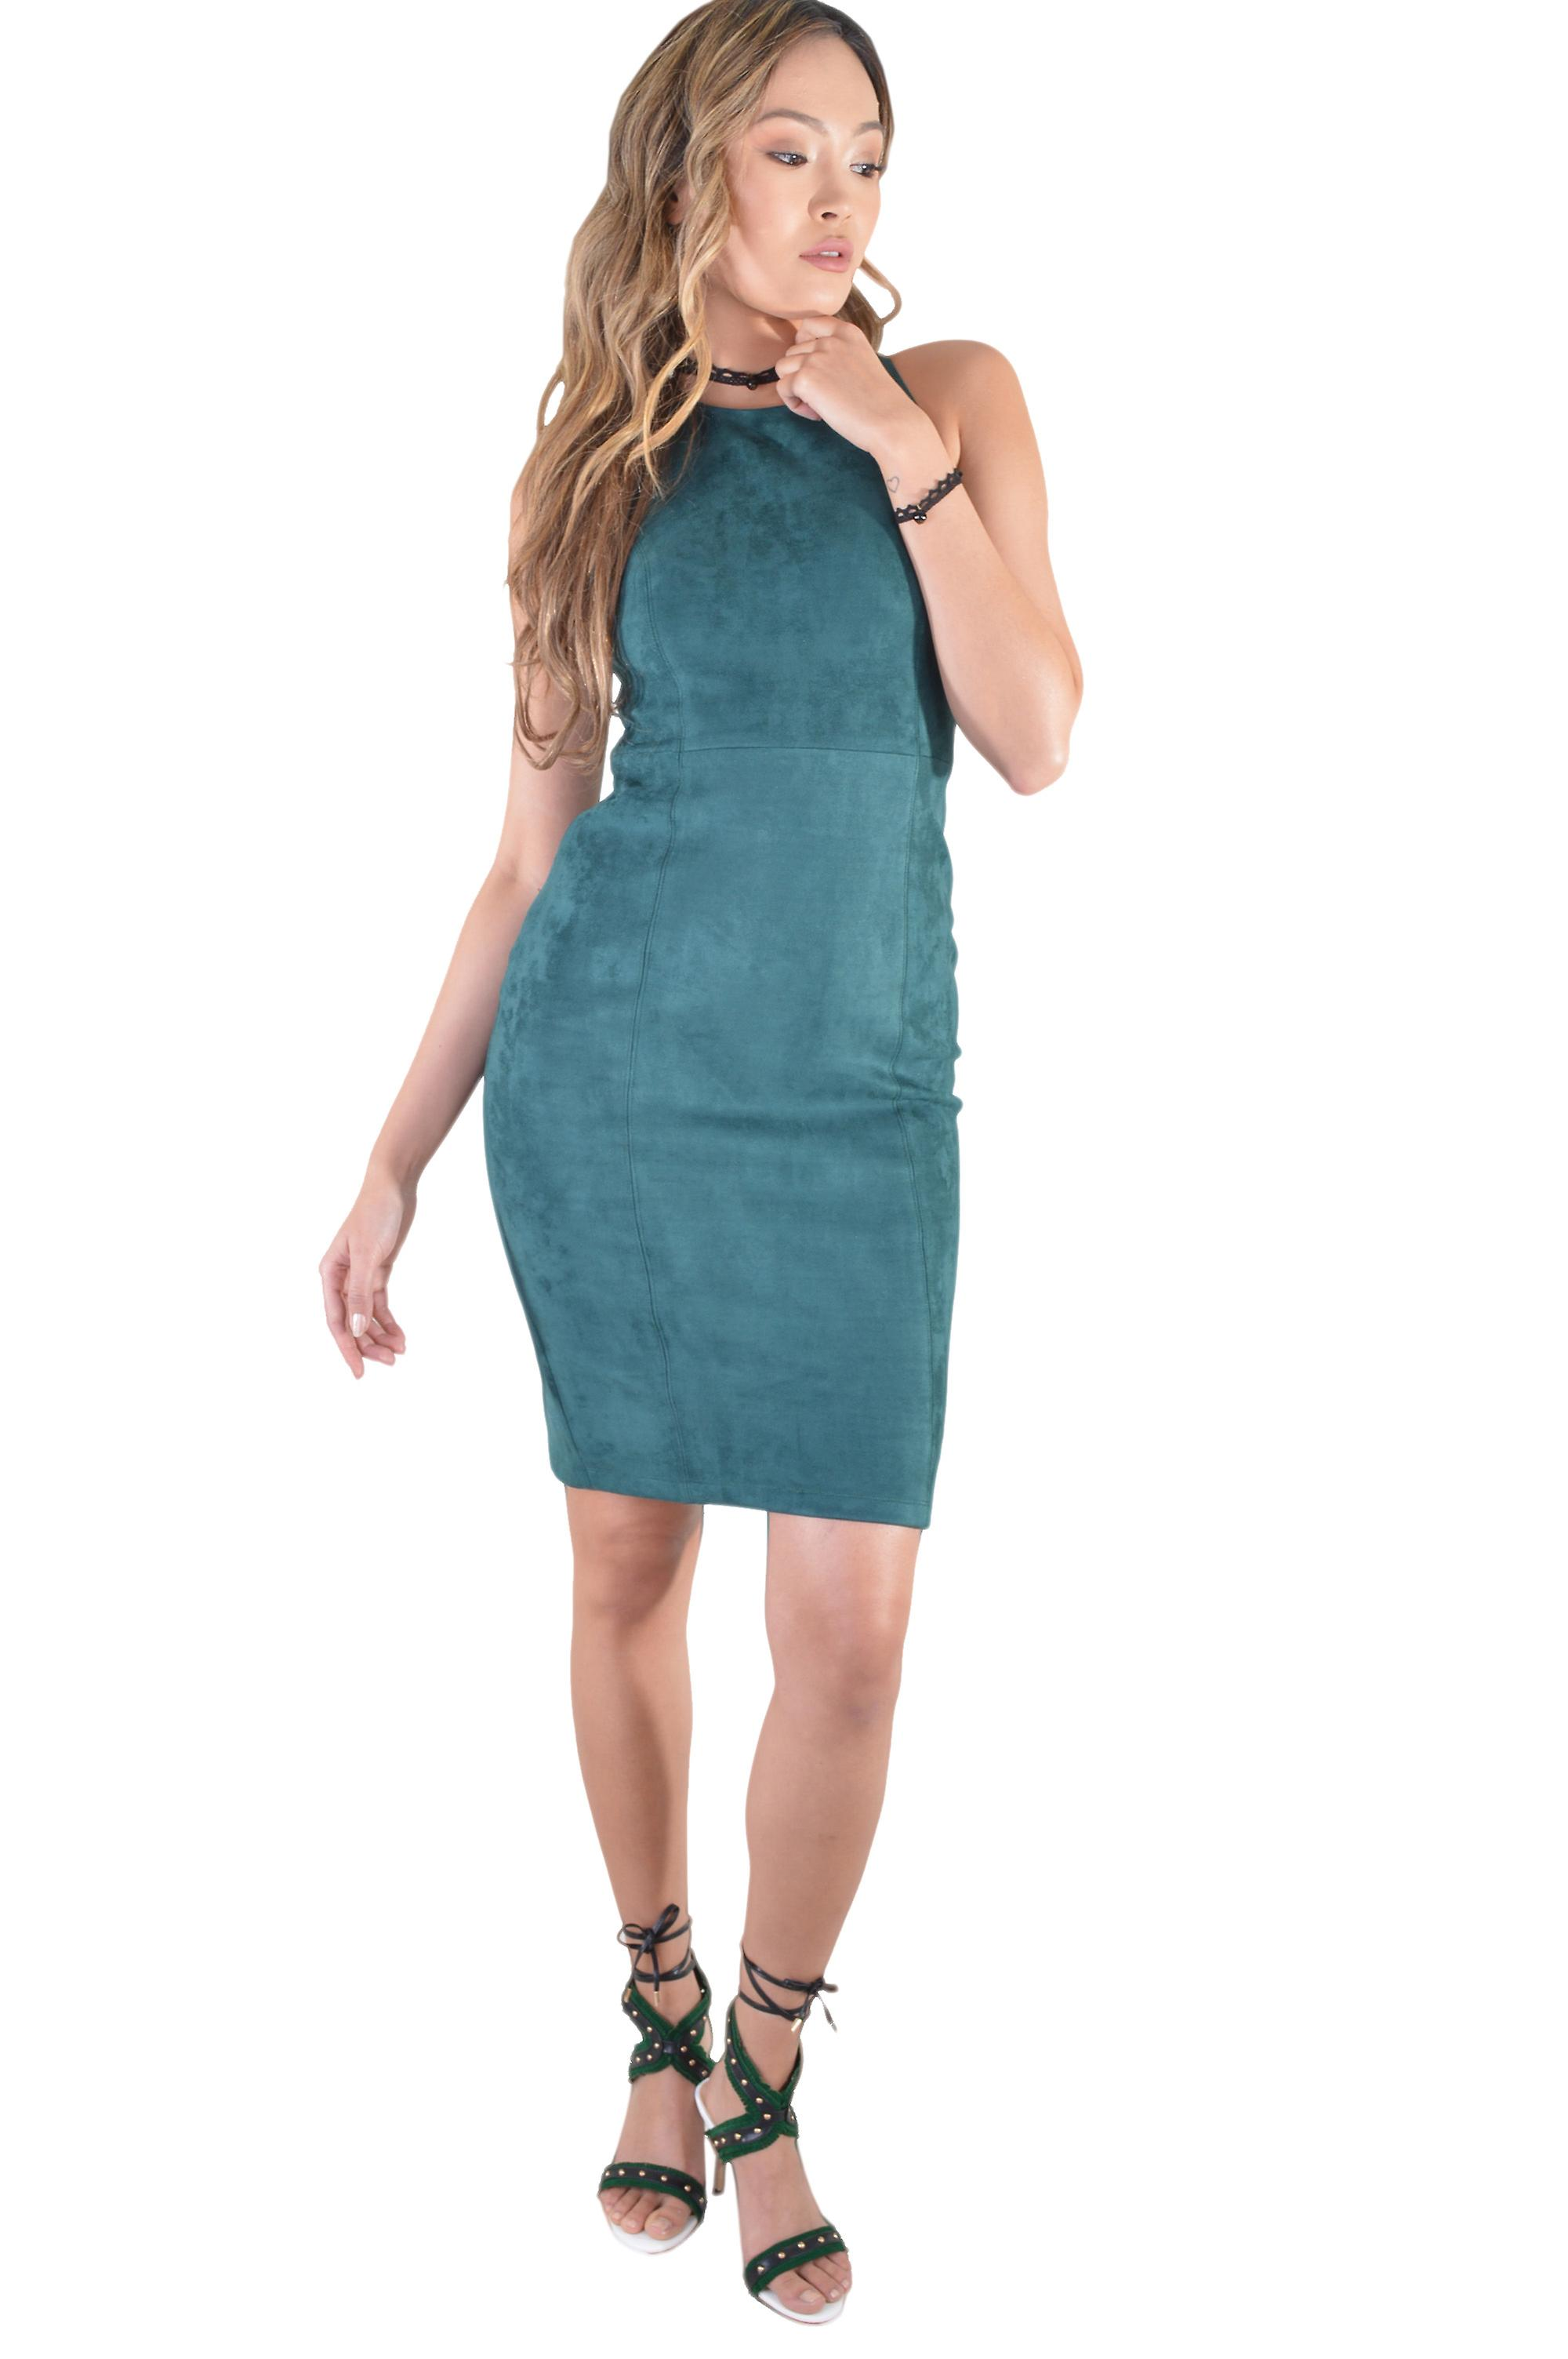 Lovemystyle Suede Dress With Cut Out Back In Green